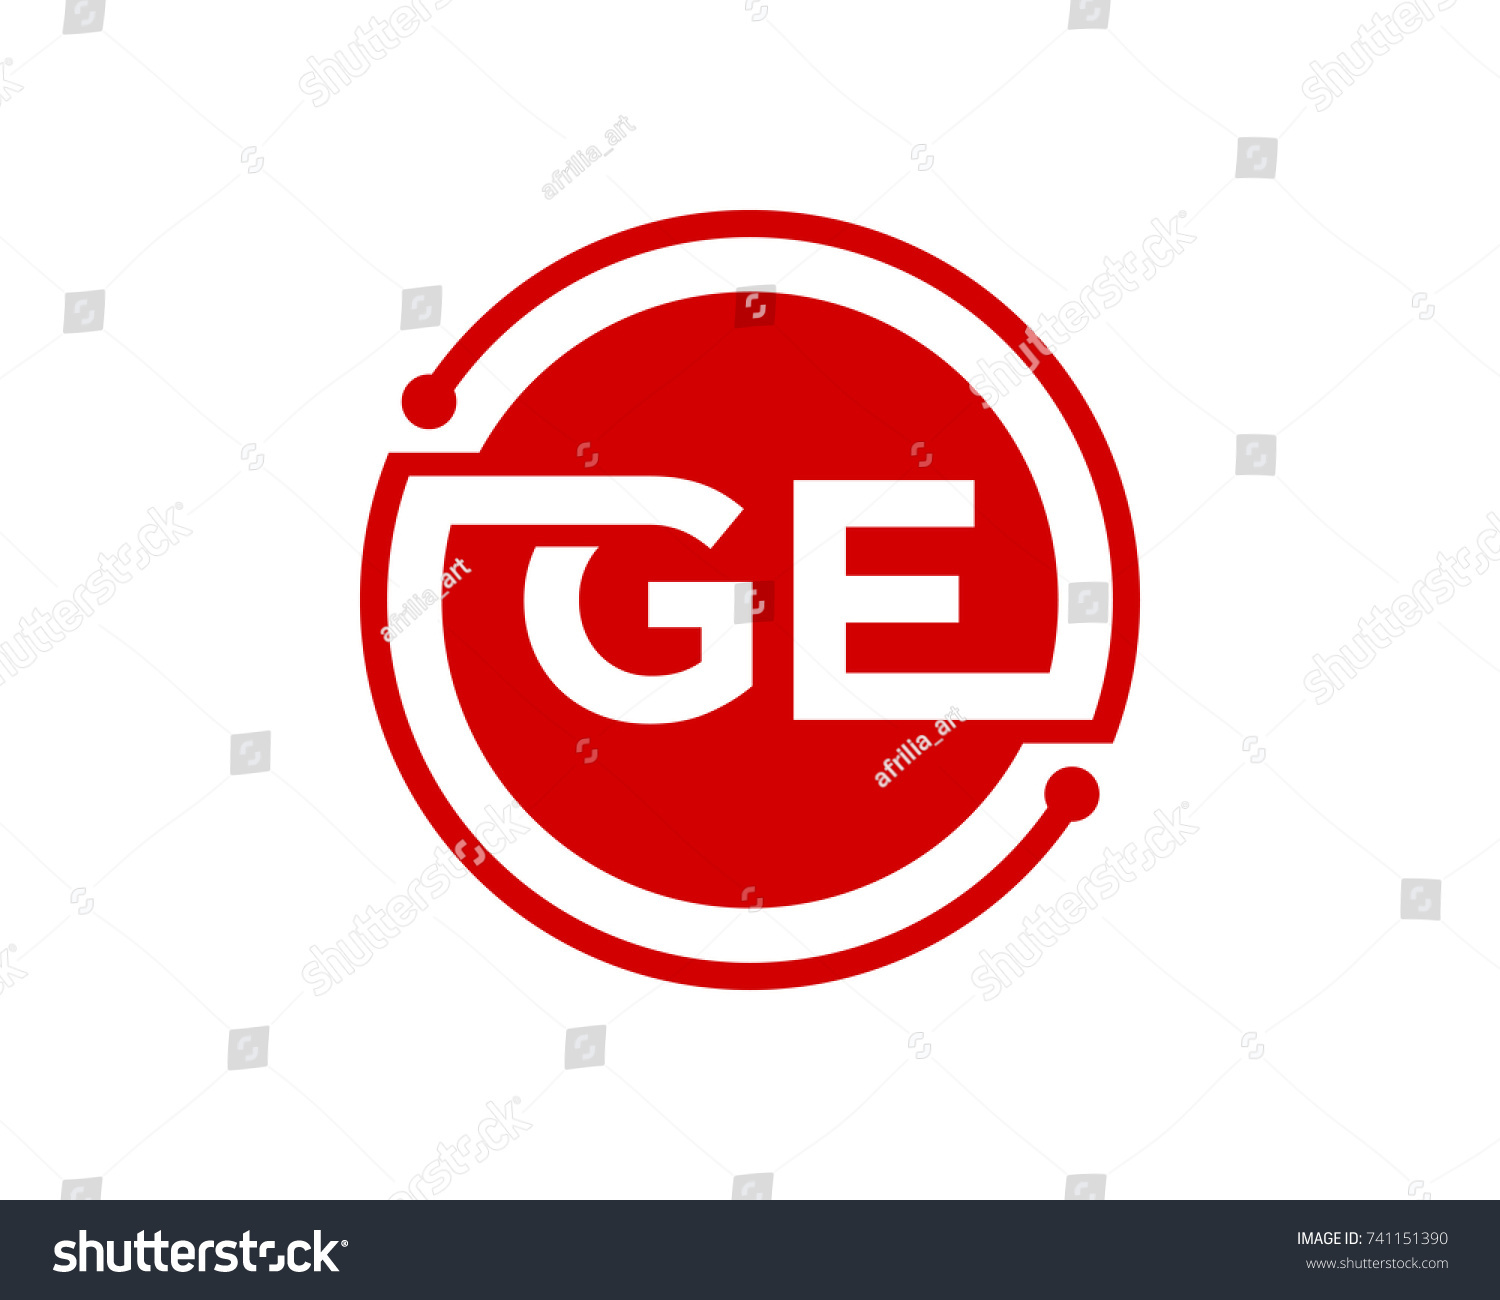 G e initial circle red stock vector 741151390 shutterstock biocorpaavc Gallery